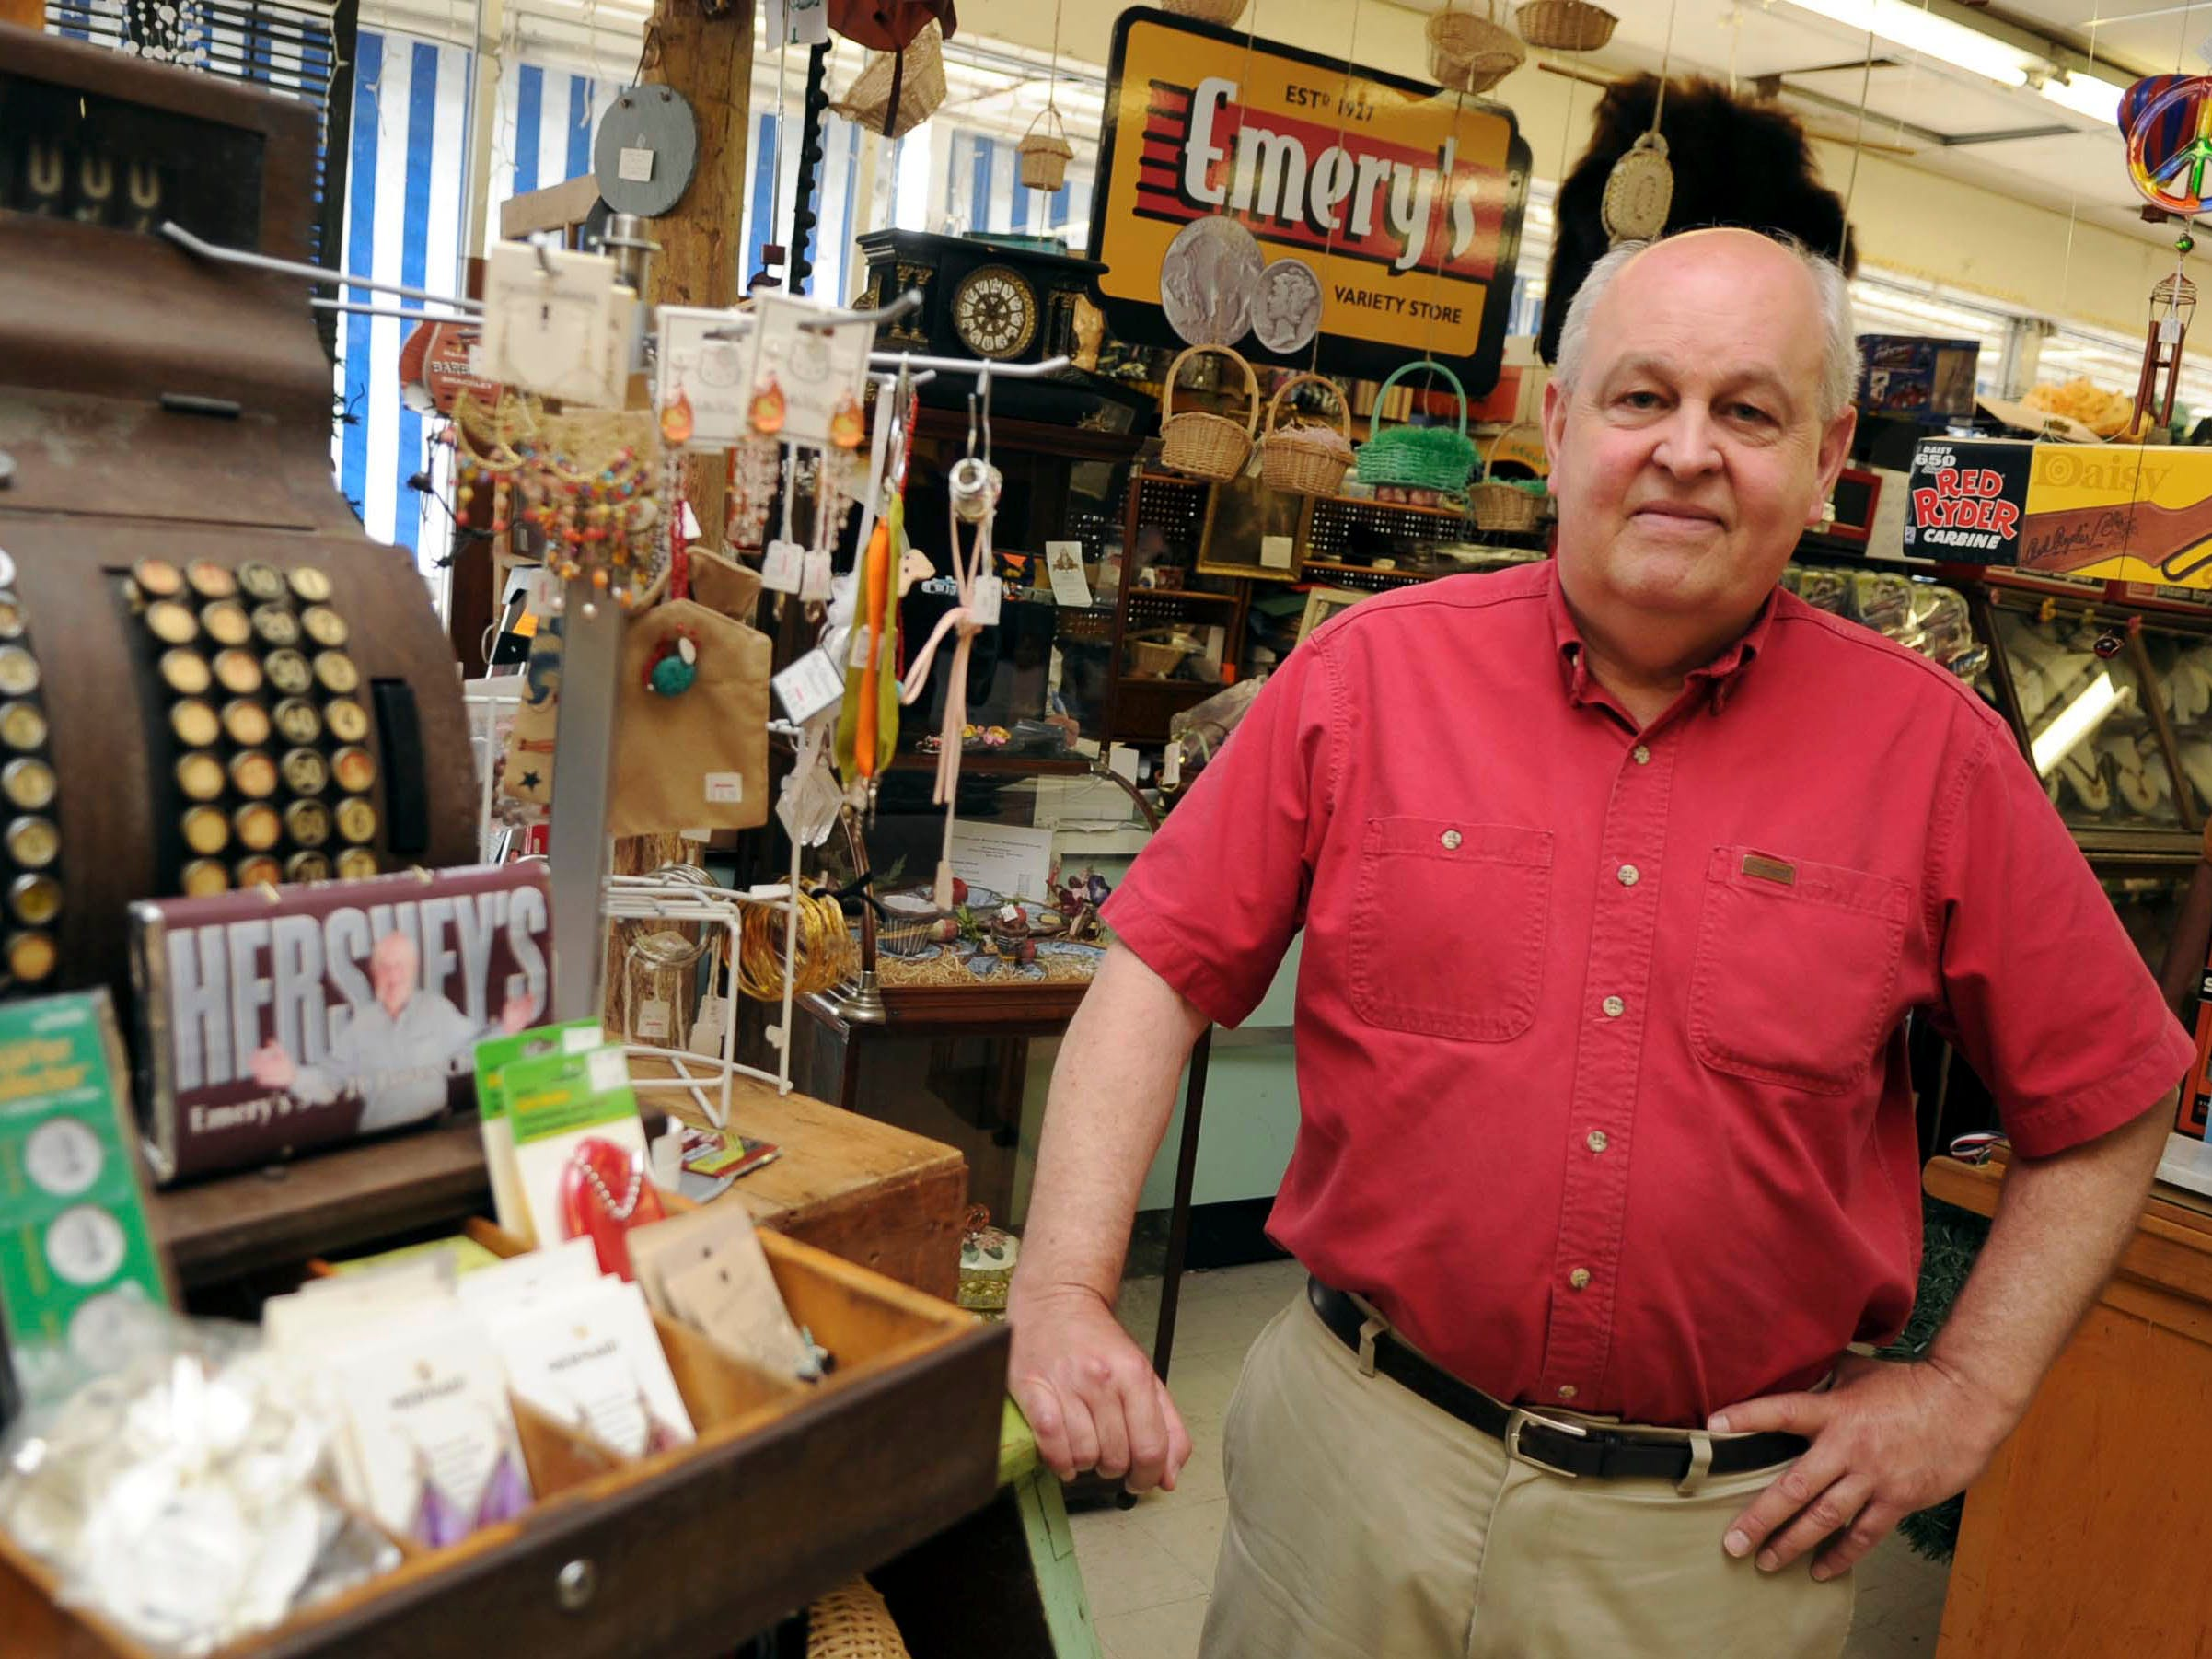 Ron Emery poses for a portrait at his business Emery's 5 & 10 on Chapman Highway on Tuesday, June 14, 2011. Emery says that the detour route for construction on the Henley street bridge has confused customers and hurt his business.